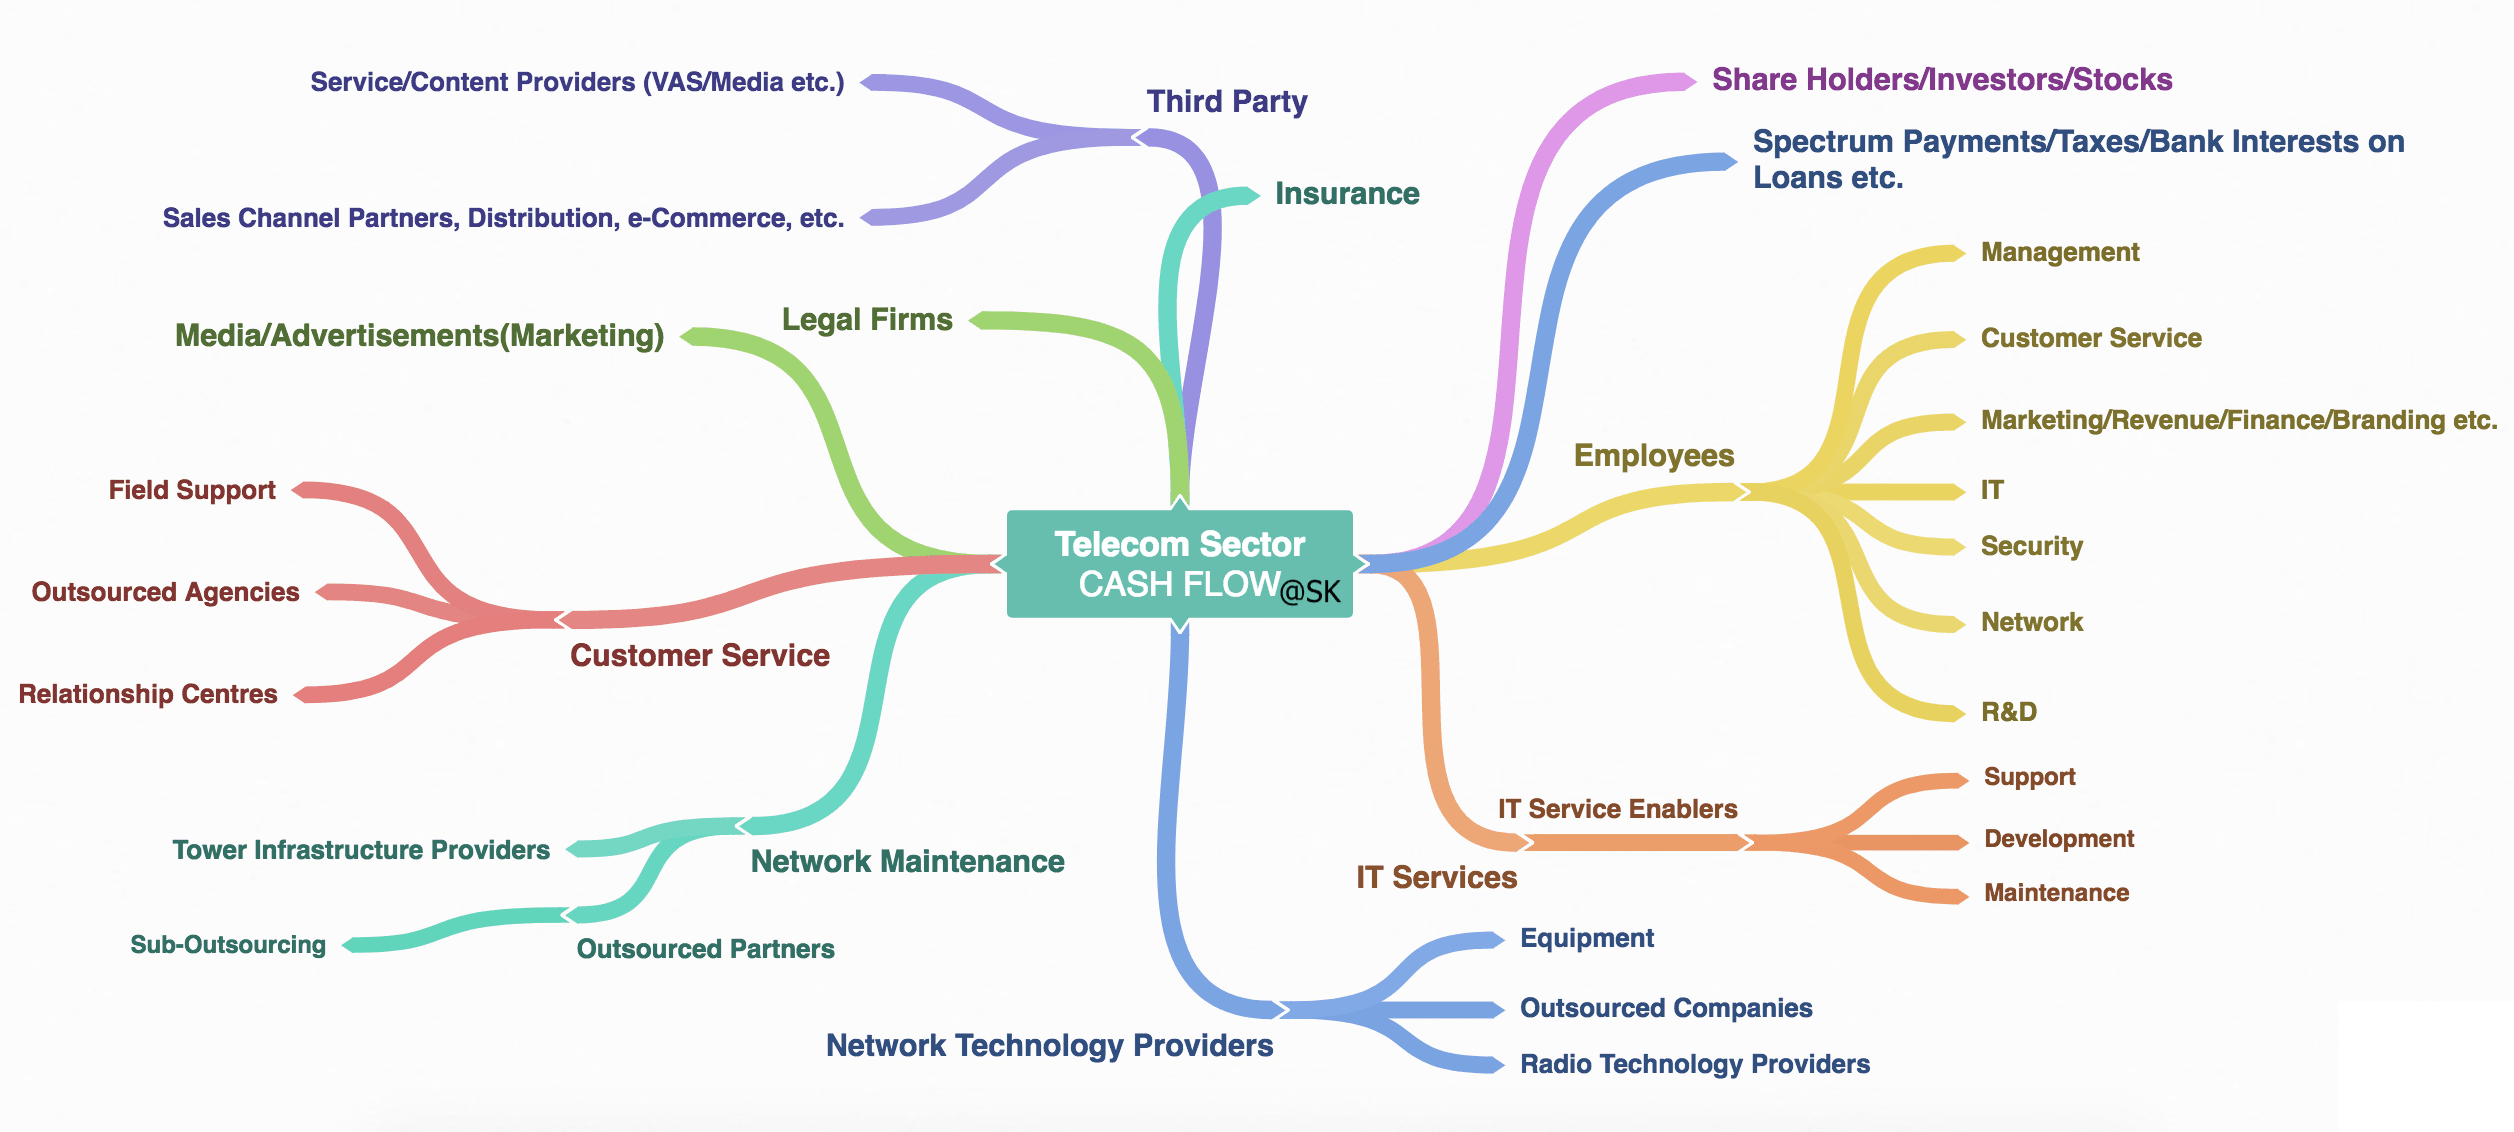 Telecom Sector Overview